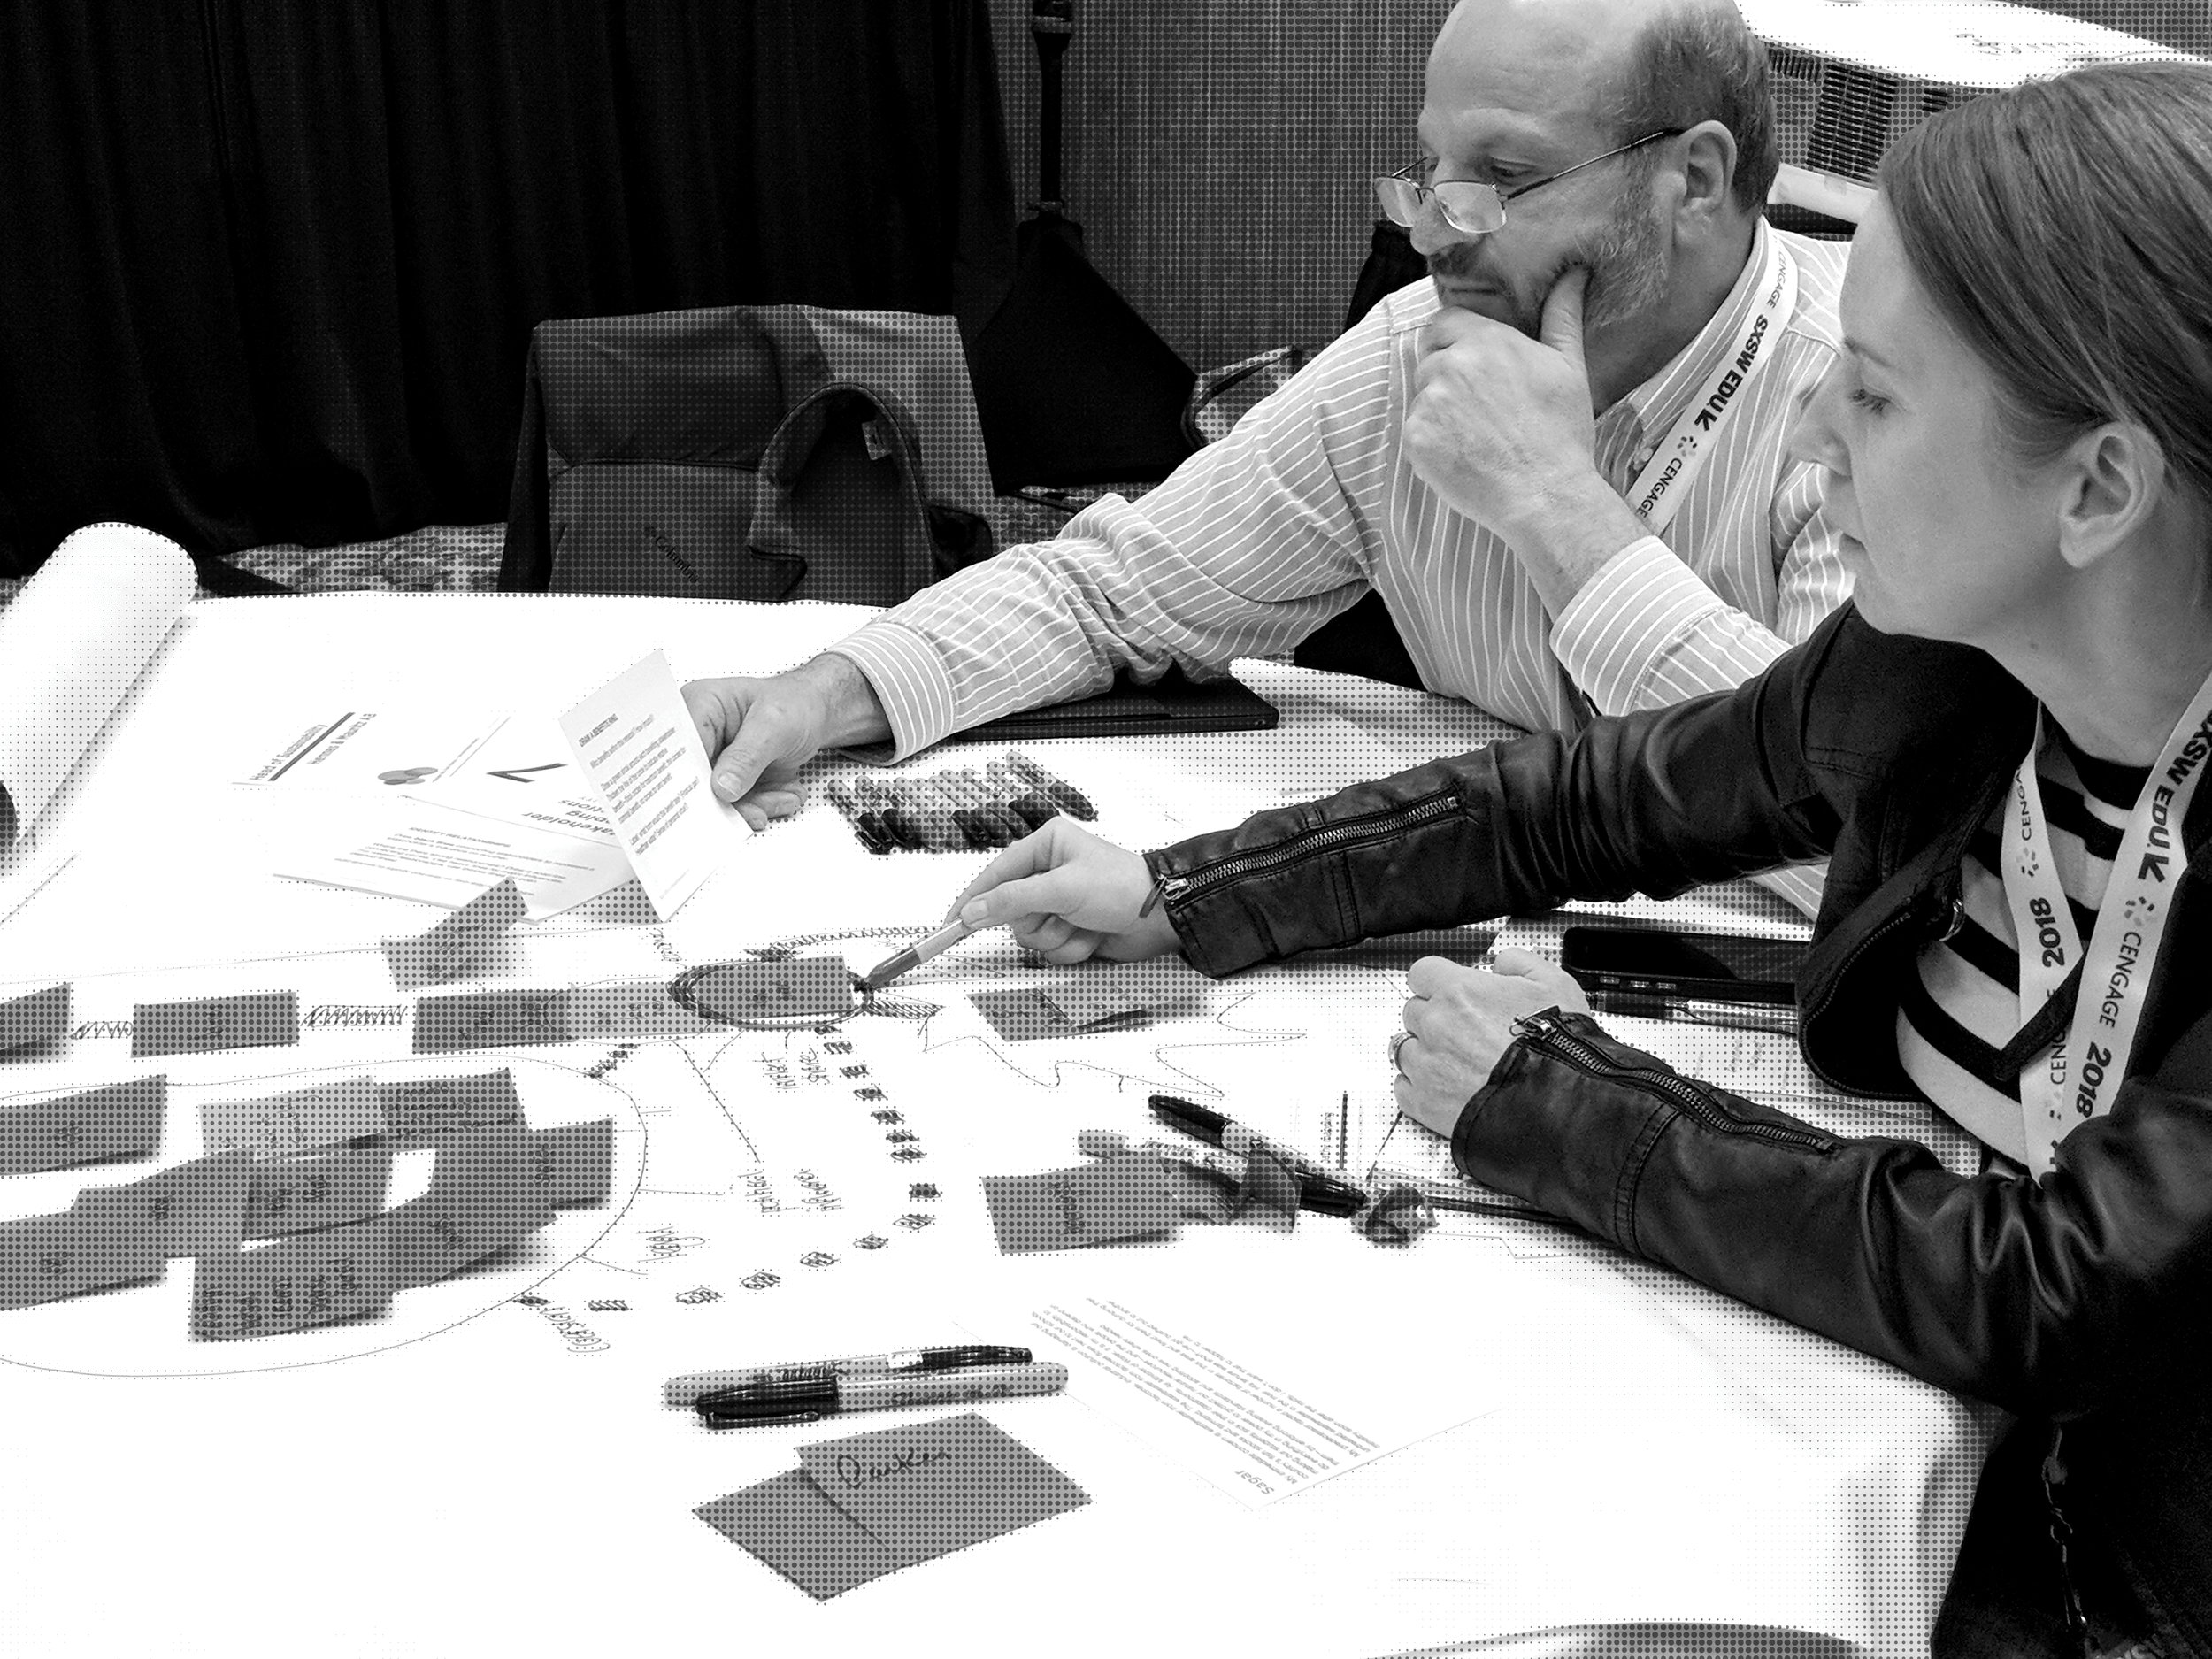 A team of two workshop participants thoughtfully consider the arrangement of their stakeholder map.